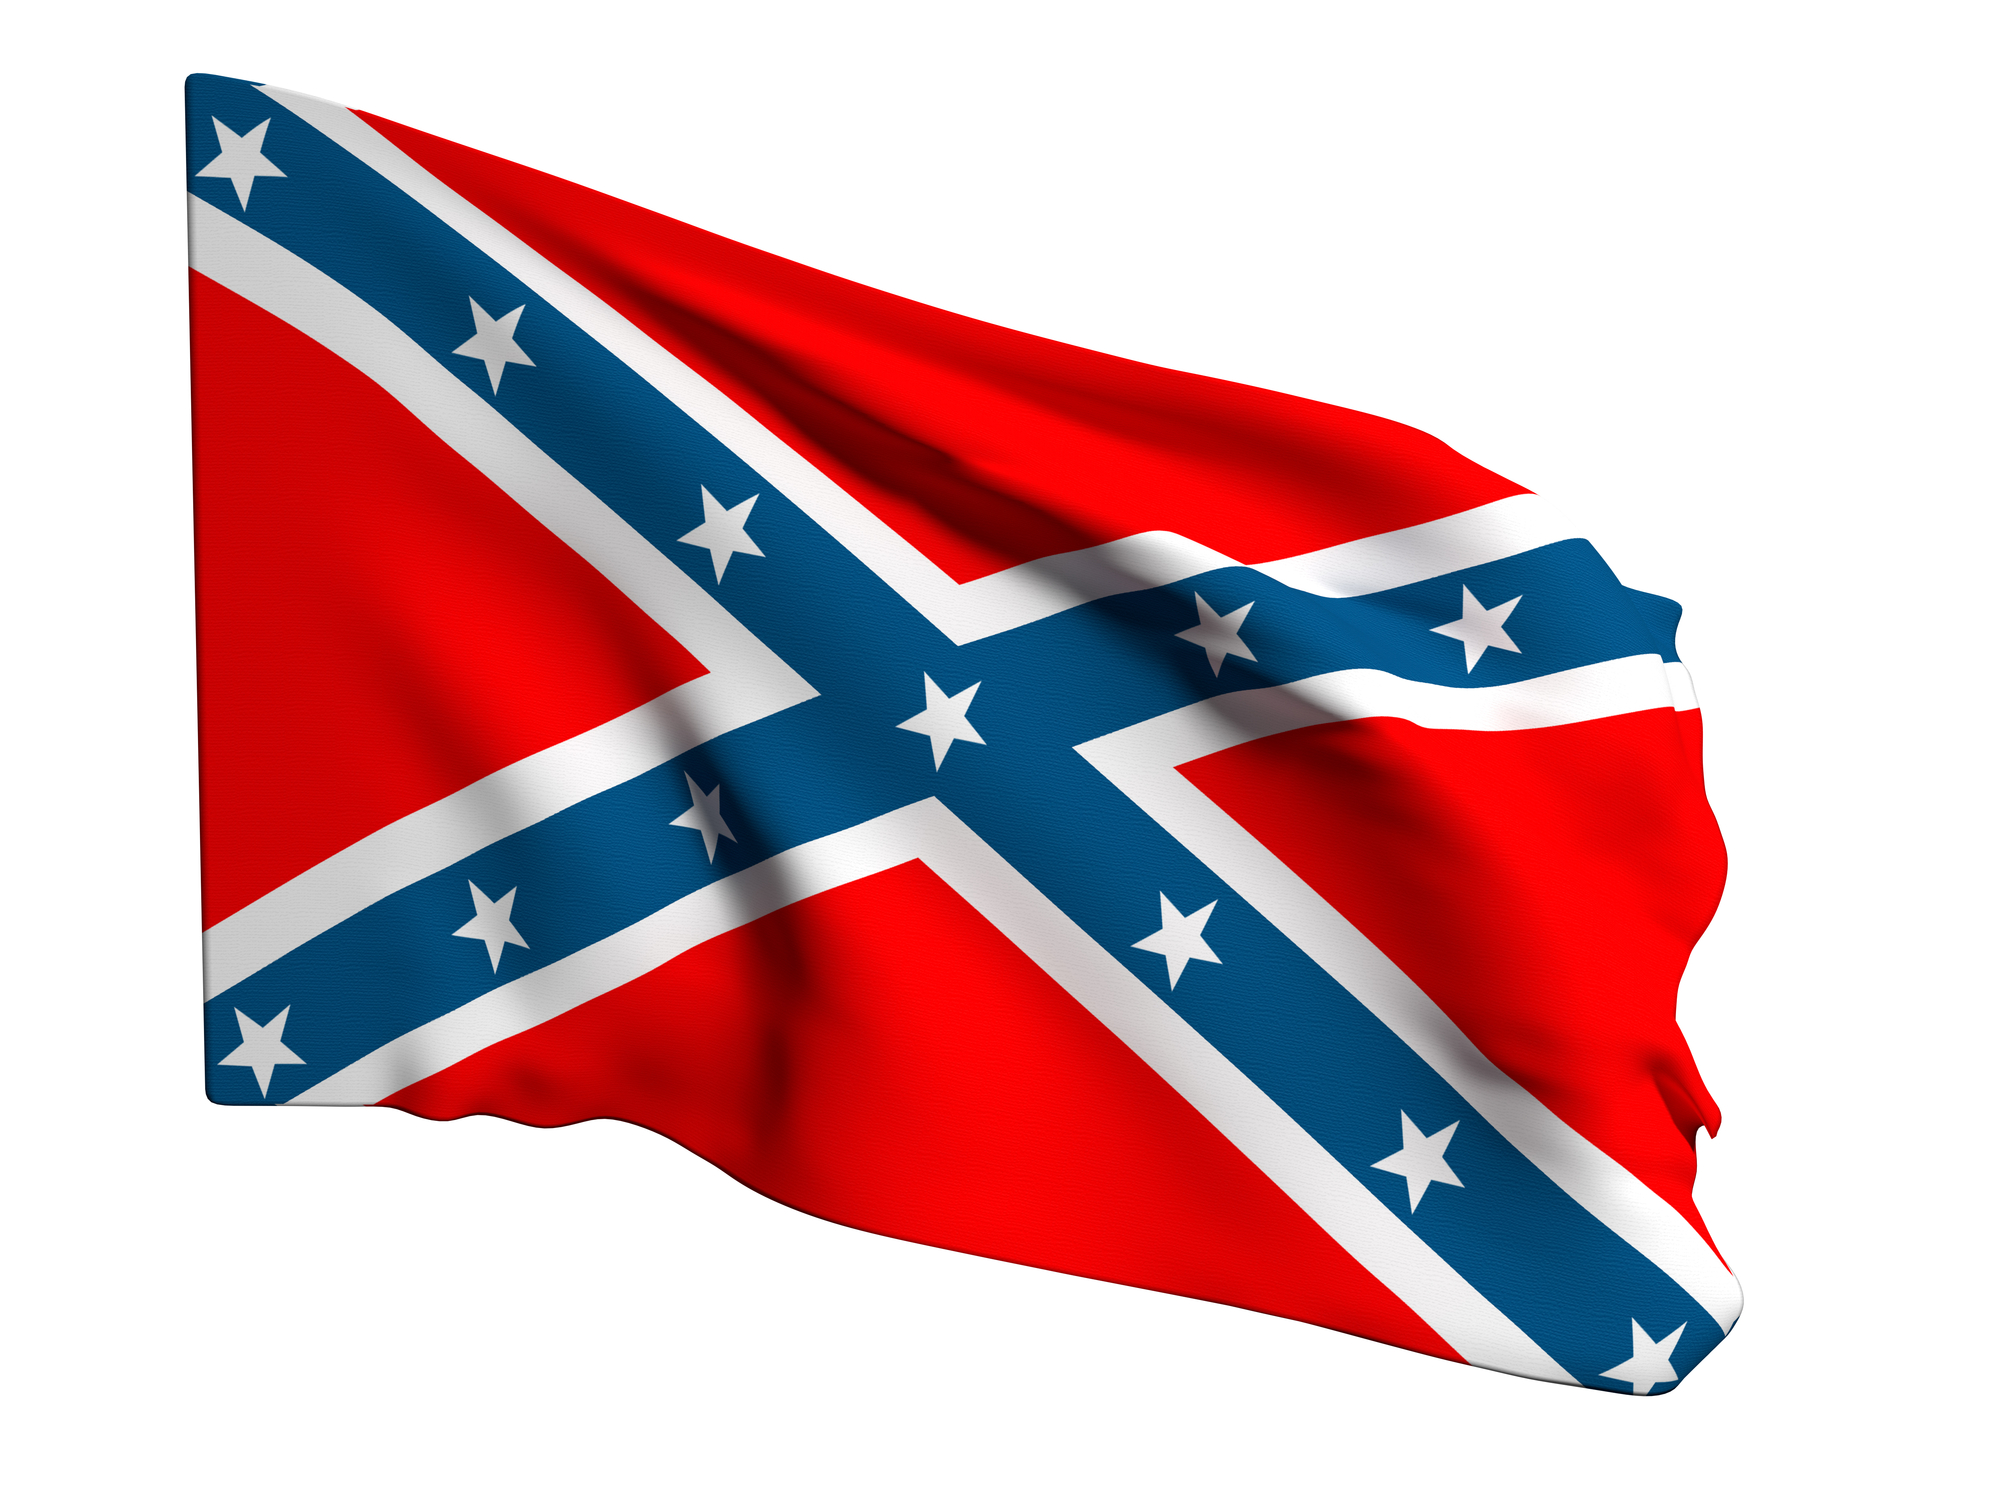 Confederate Flag Wallpapers Pictures Images 2000x1500